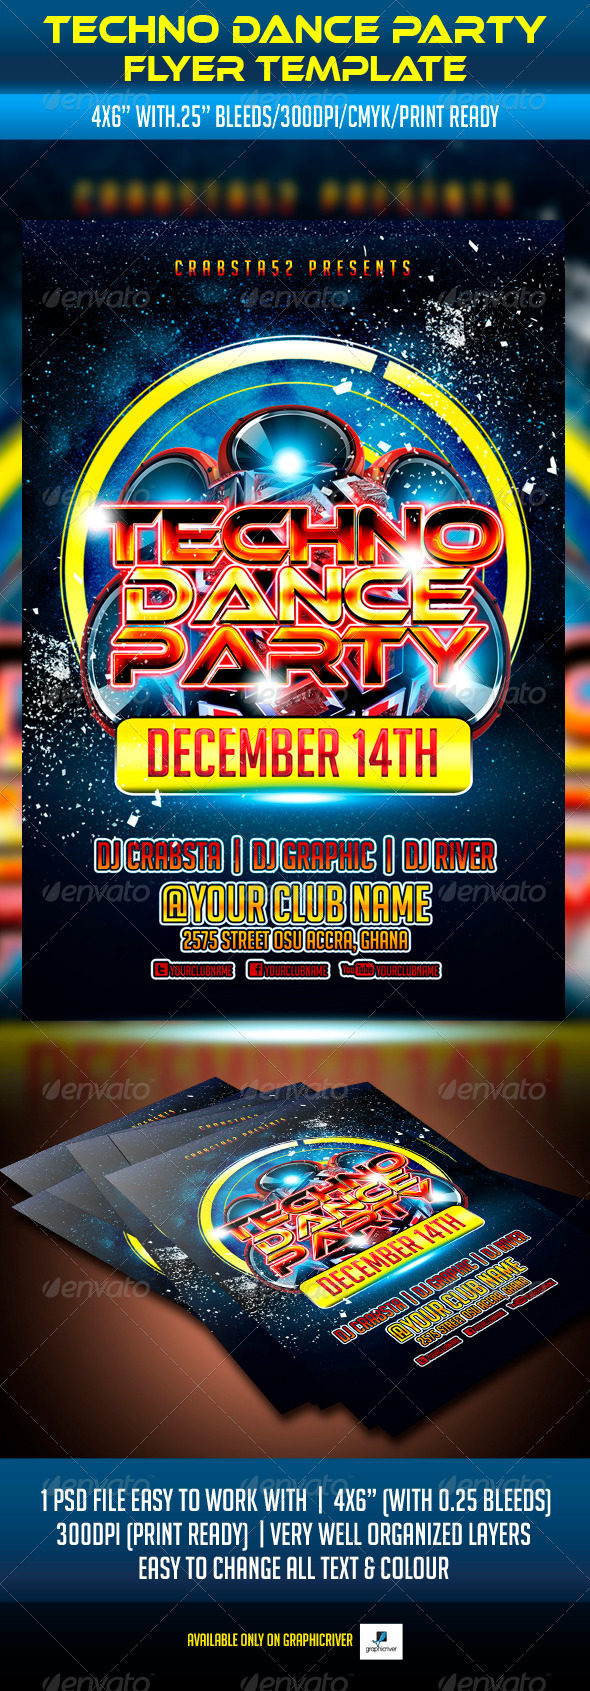 Techno Dance Party Flyer Template - Clubs & Parties Events